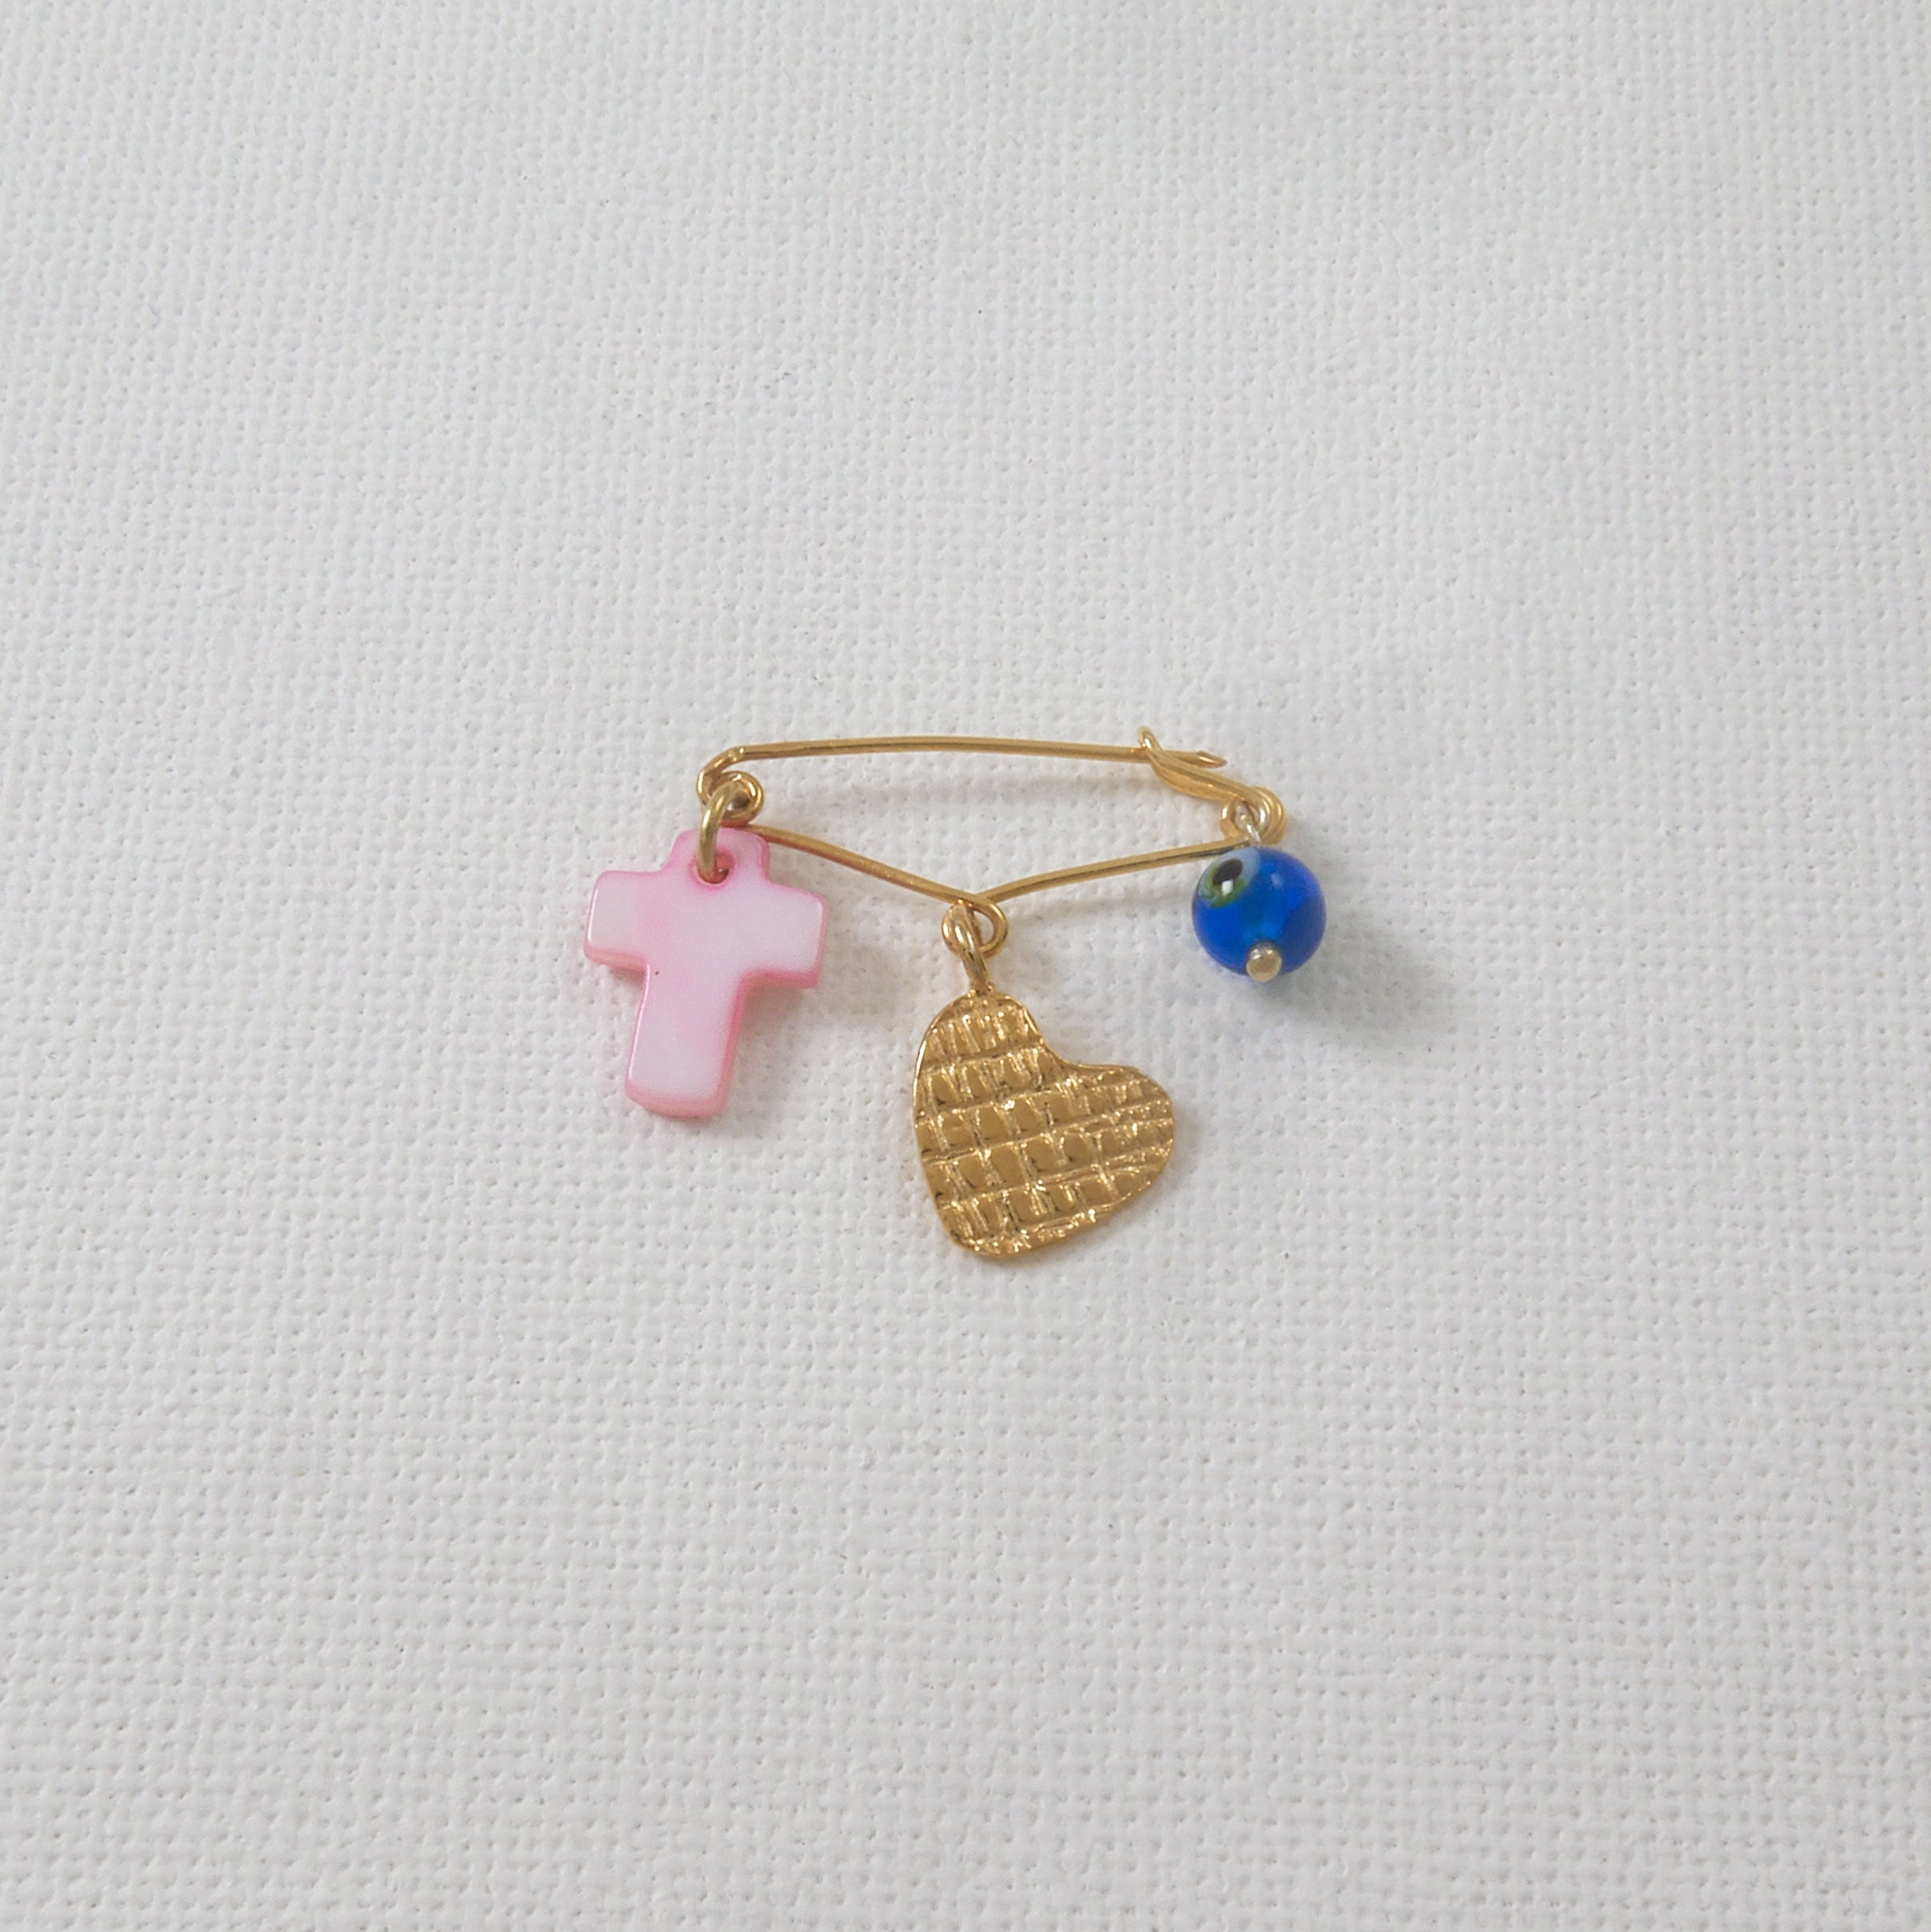 Baby Girl Pin Charm - Heart